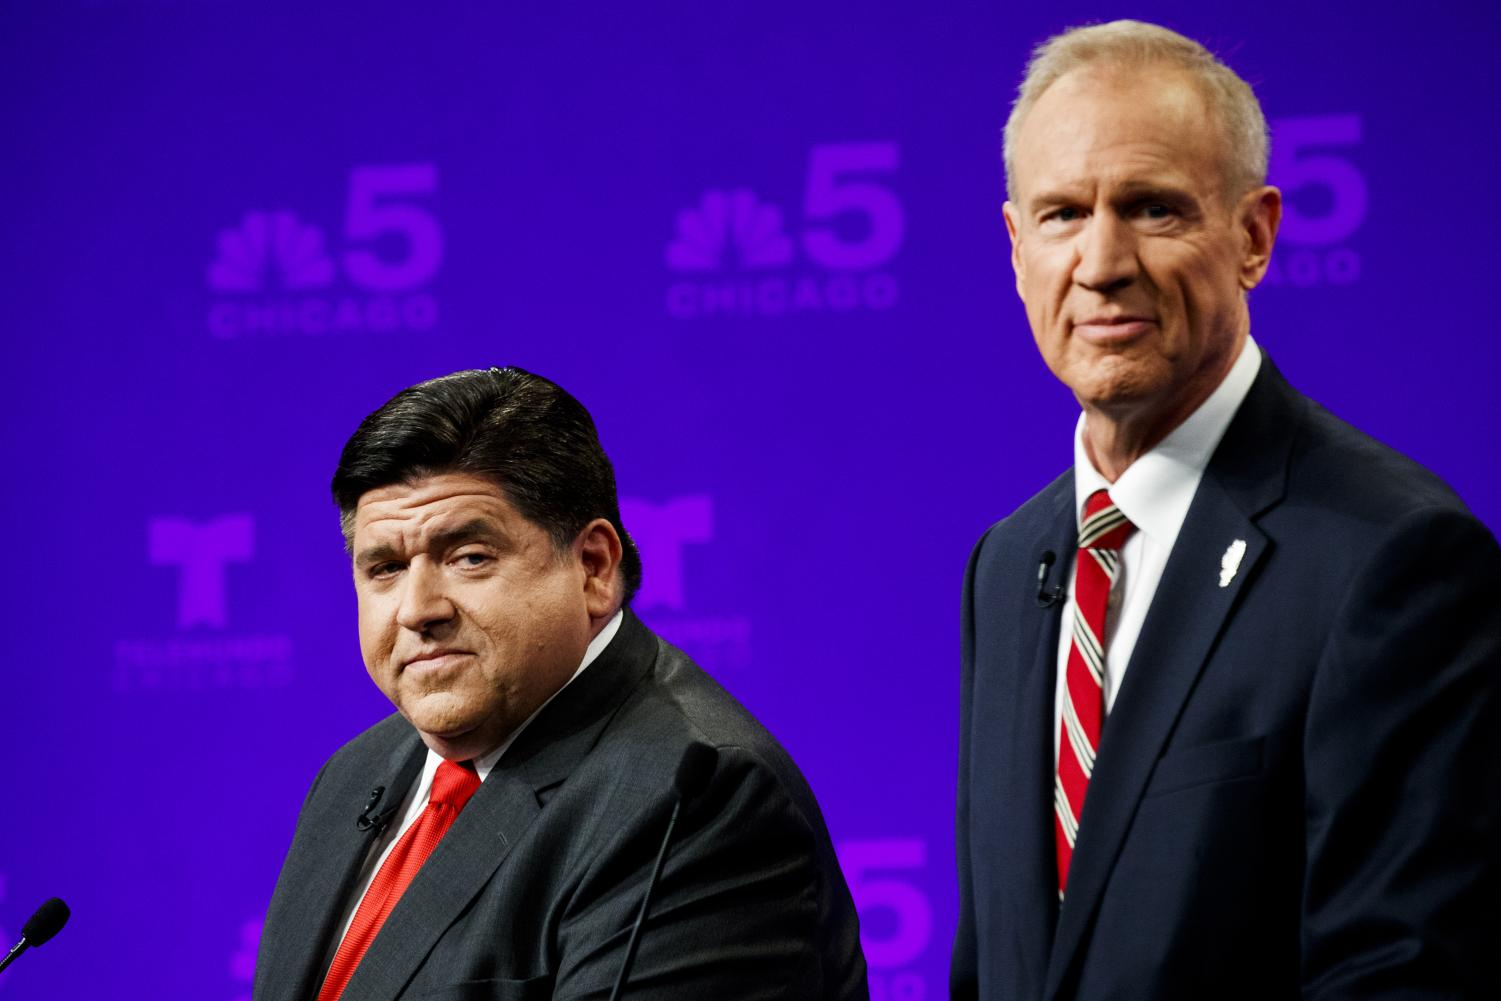 Candidates for governor, Bruce Rauner and J.B. Pritzker pose mid debate. As election day approaches, economic policy will be a high-priority issue facing the people of Illinois.